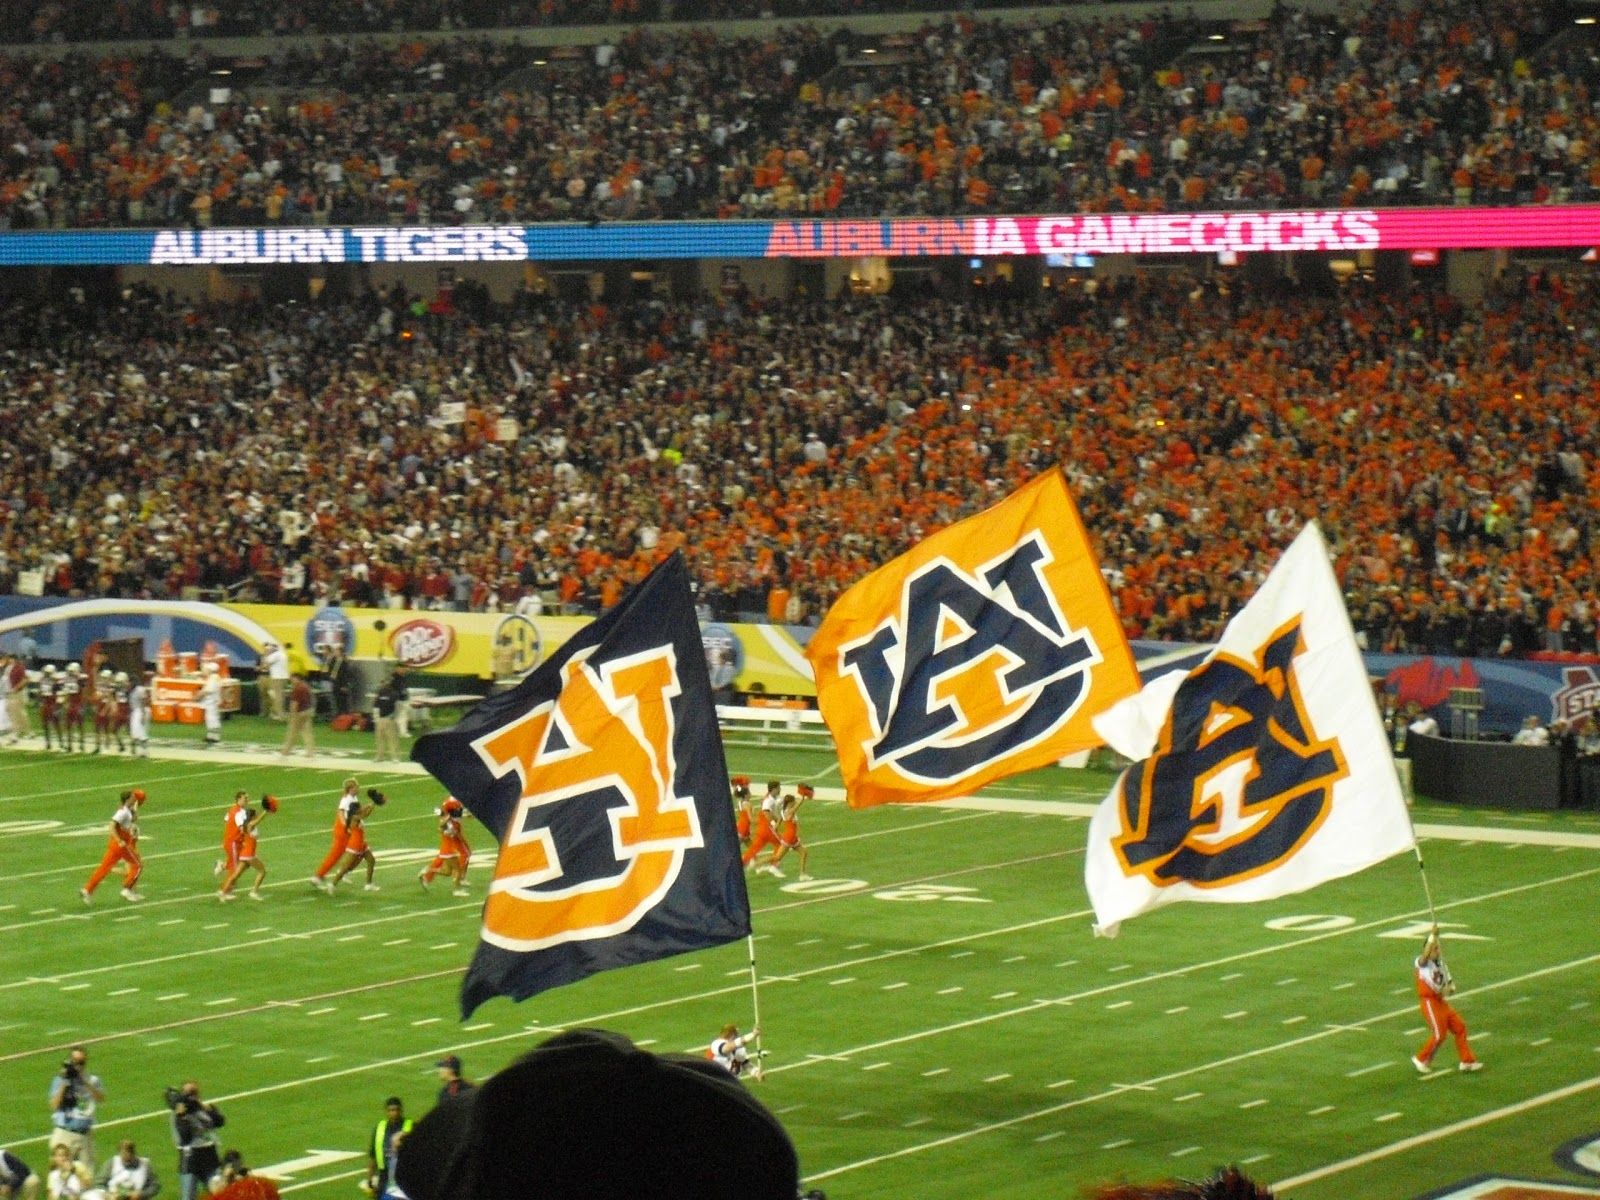 auburn football - photo #35